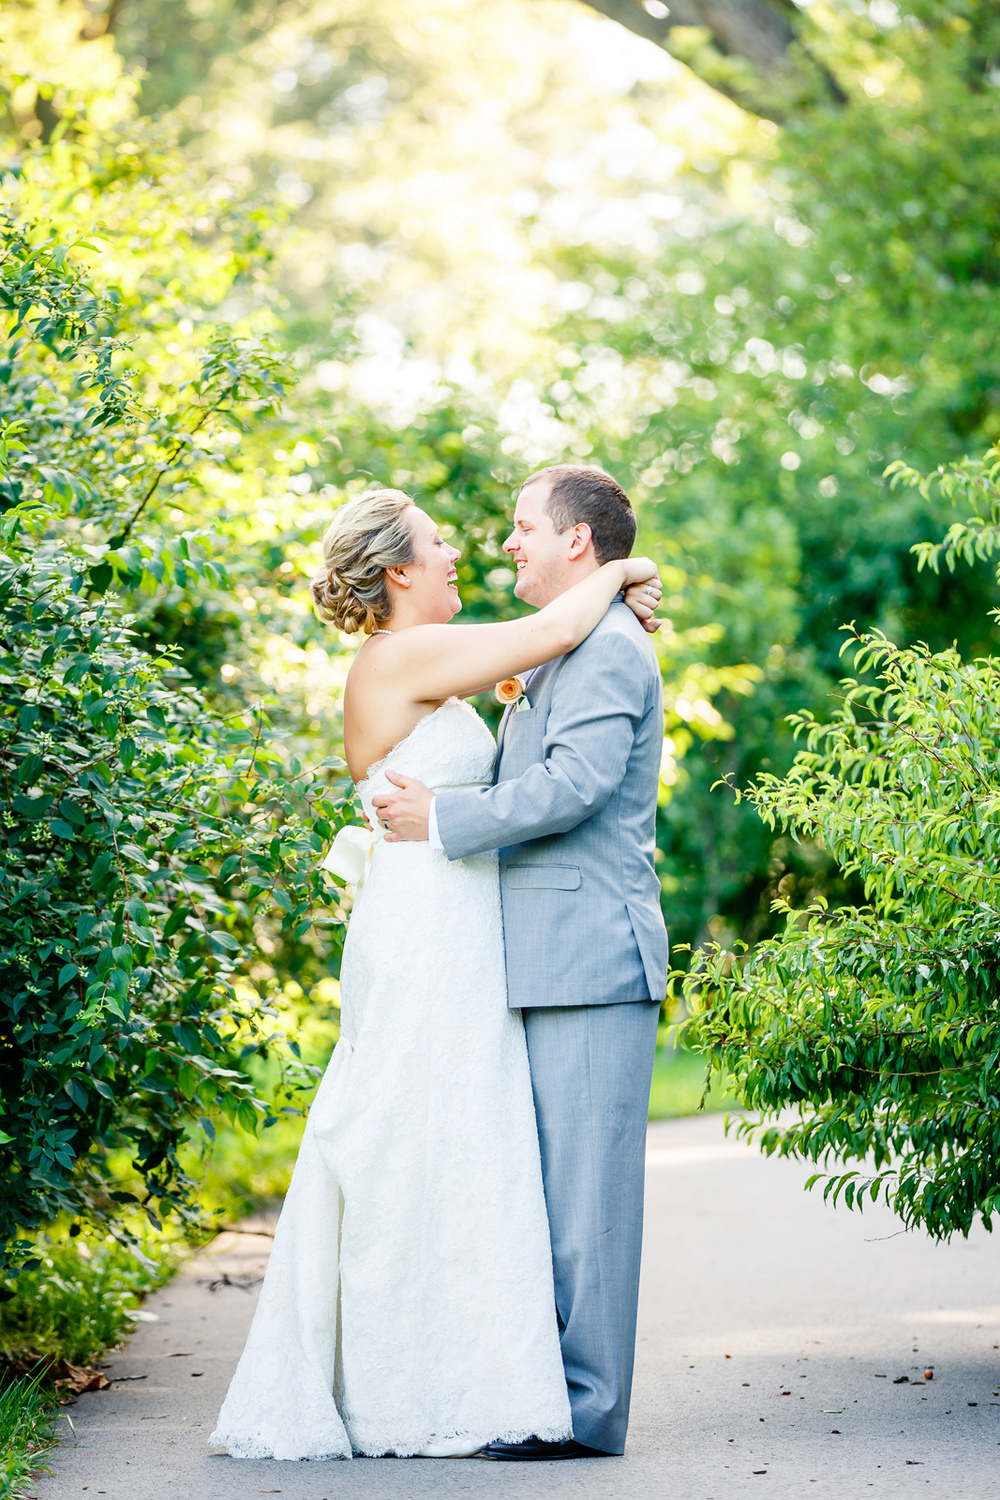 Tower Grove Park Wedding Party Photos with St. Louis Wedding Photographers by Oldani Photography 3.jpg